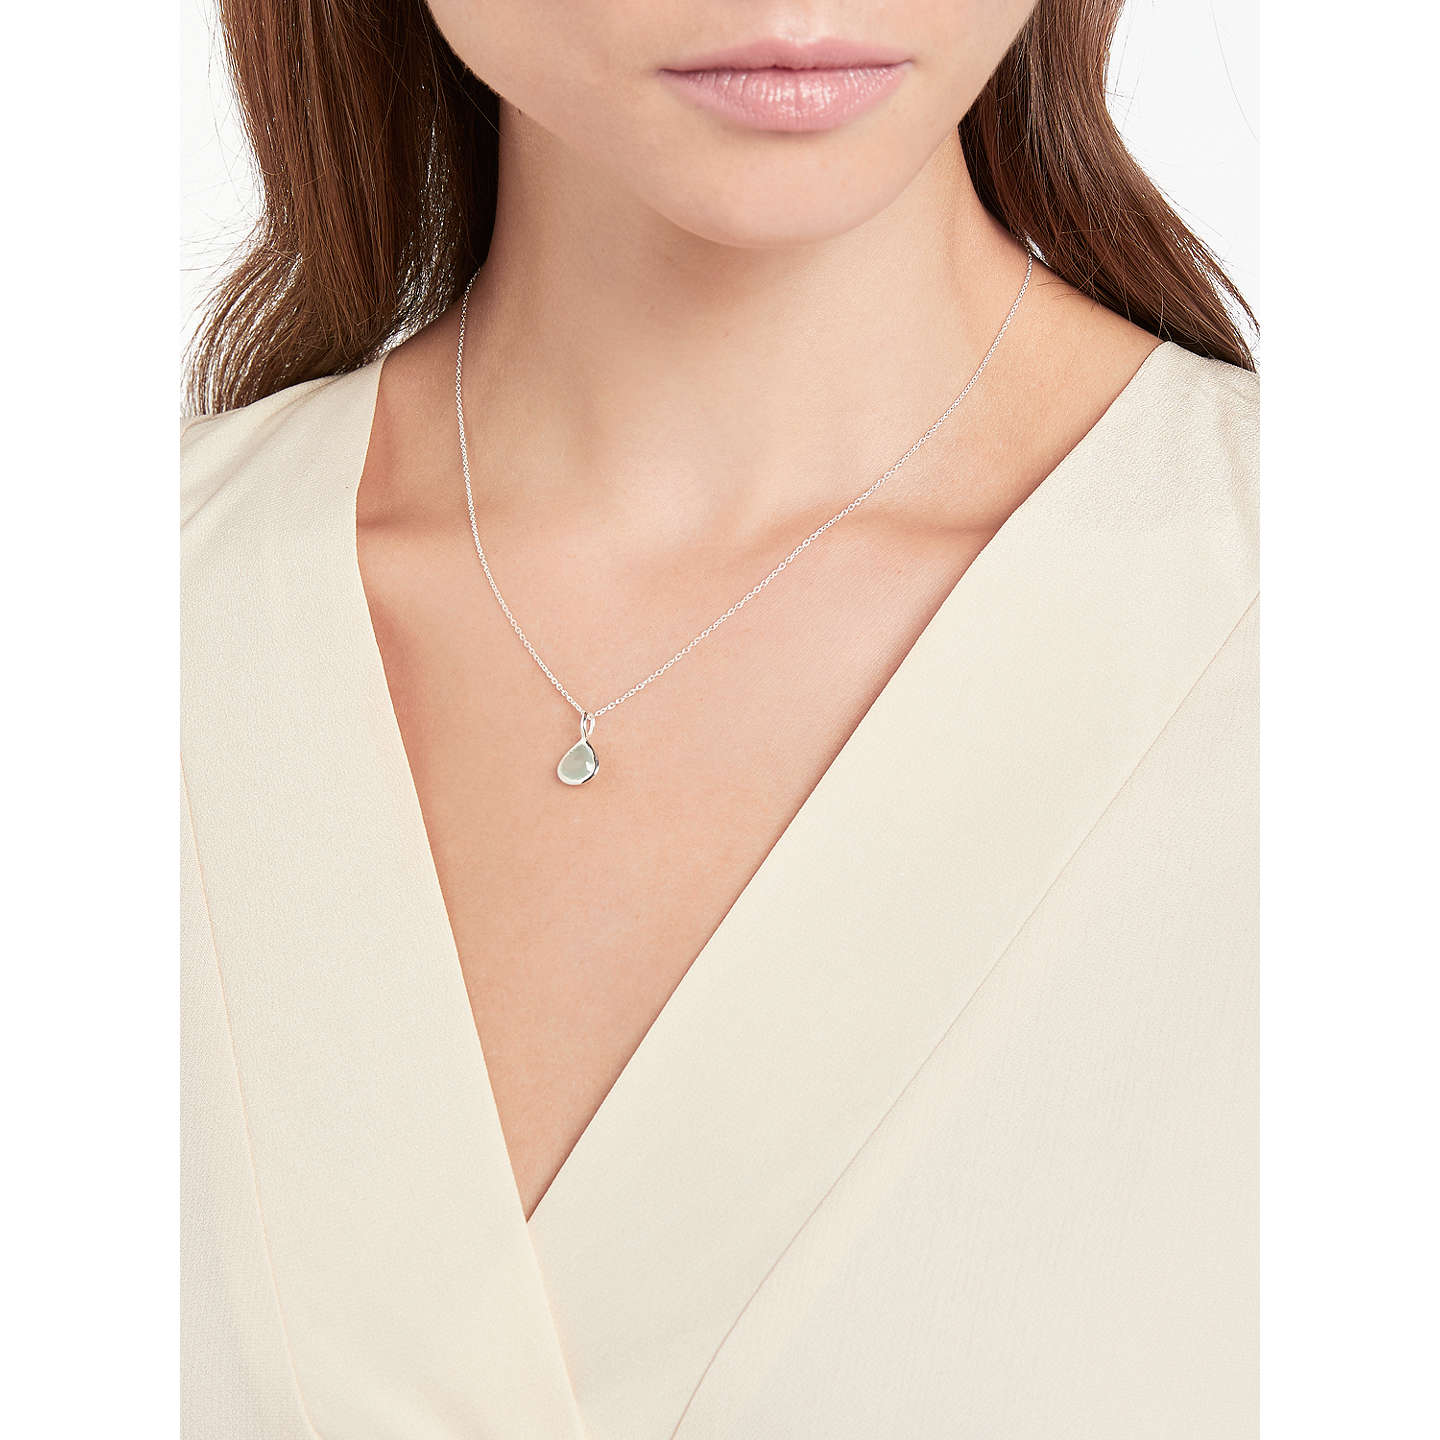 BuyJohn Lewis Semi-Precious Stone Birthstone Pendant Necklace, March Aqua Chalcedony Online at johnlewis.com